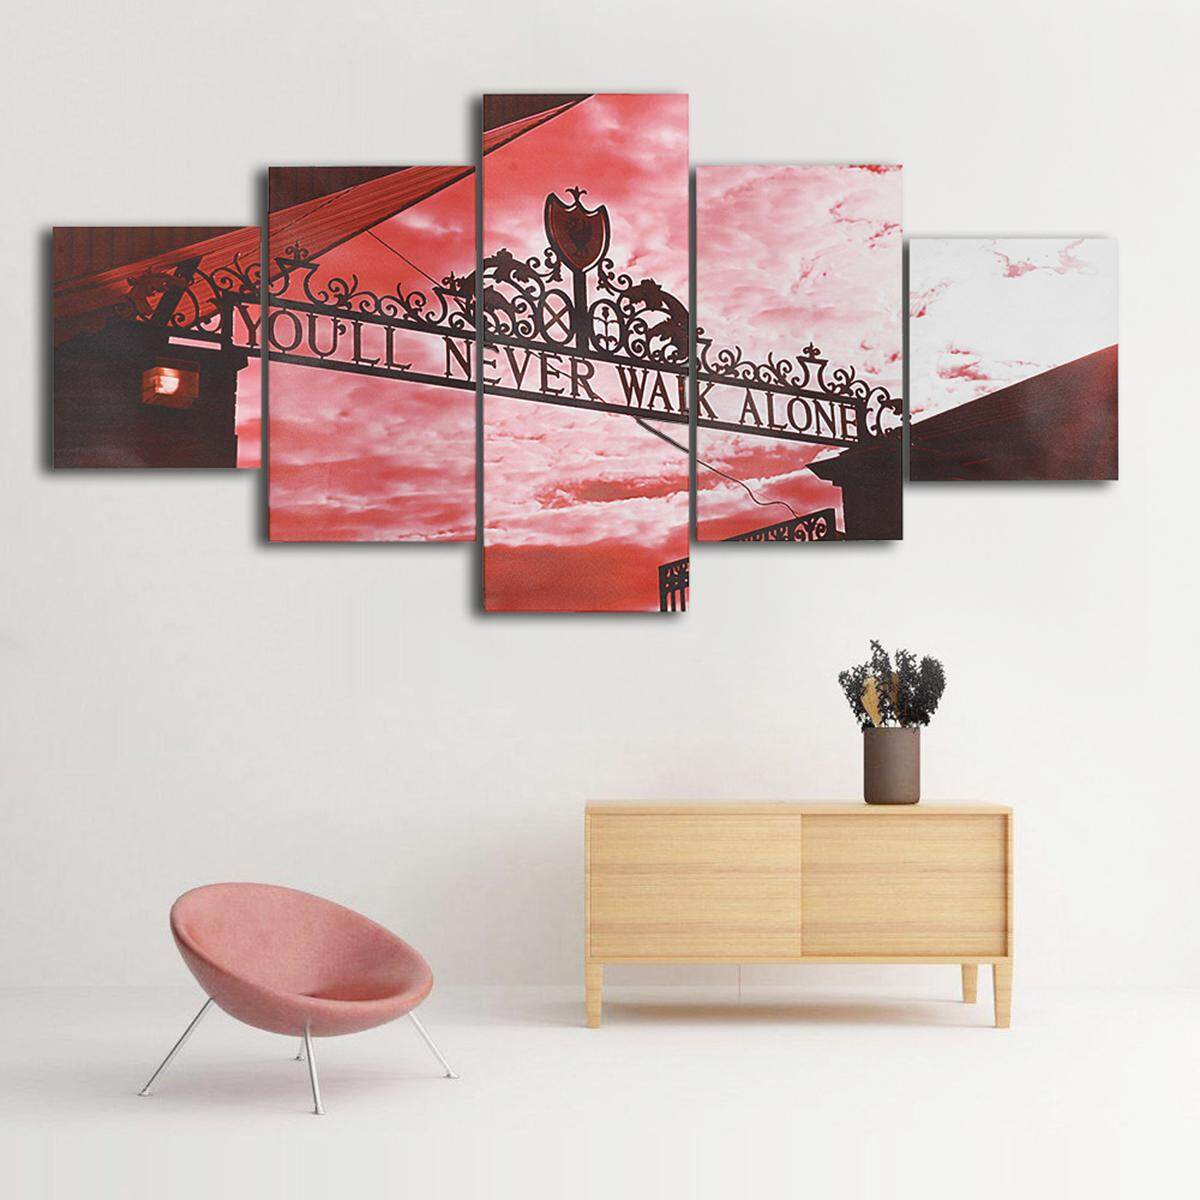 Youll Never Walk Alone Liverpool Red 5 Panel Canvas Print Wall Art